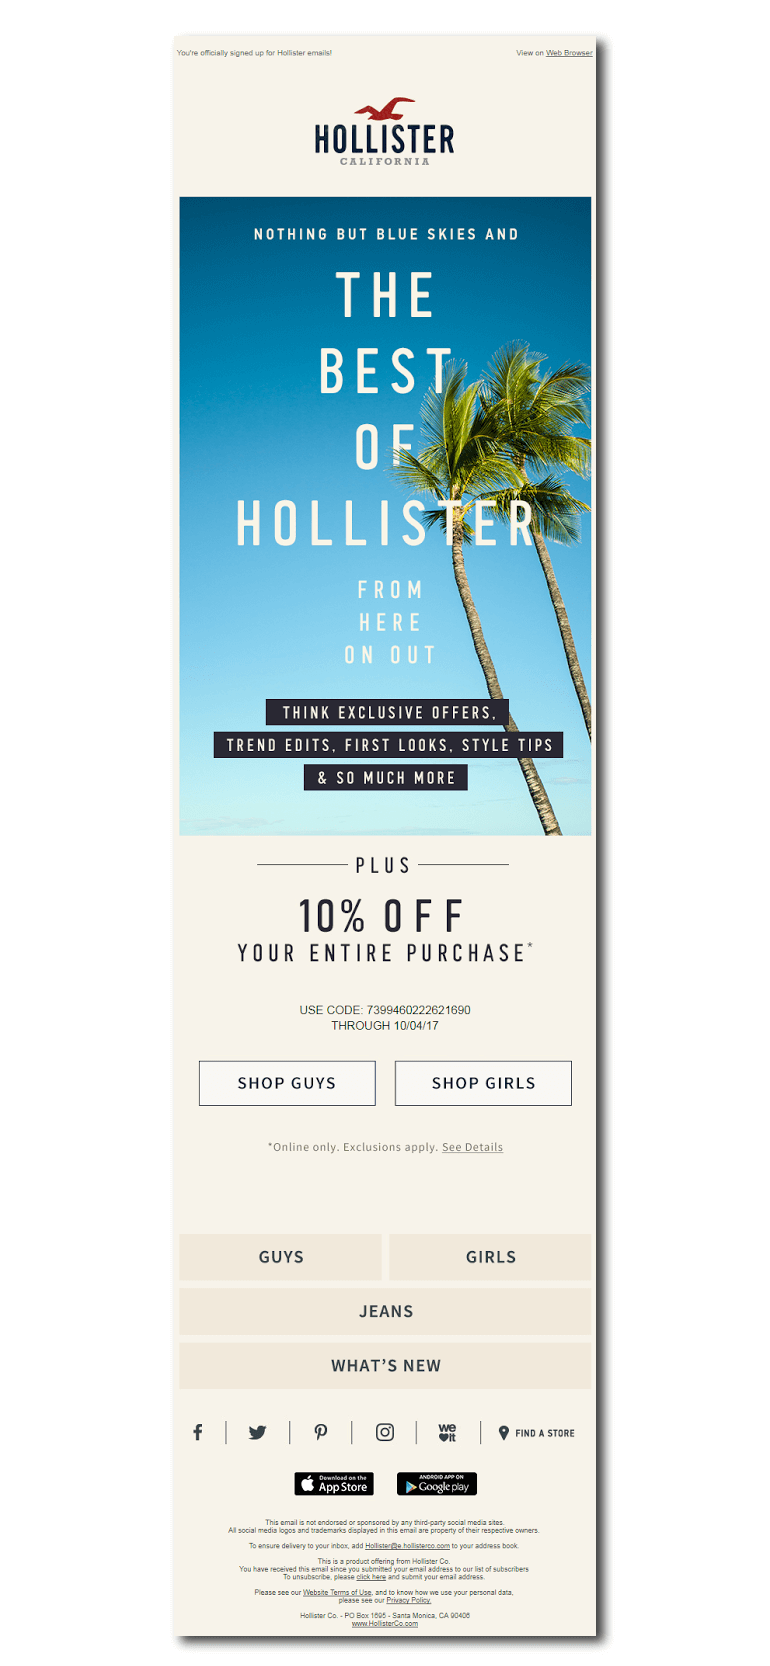 Example of a welcome email from Hollister